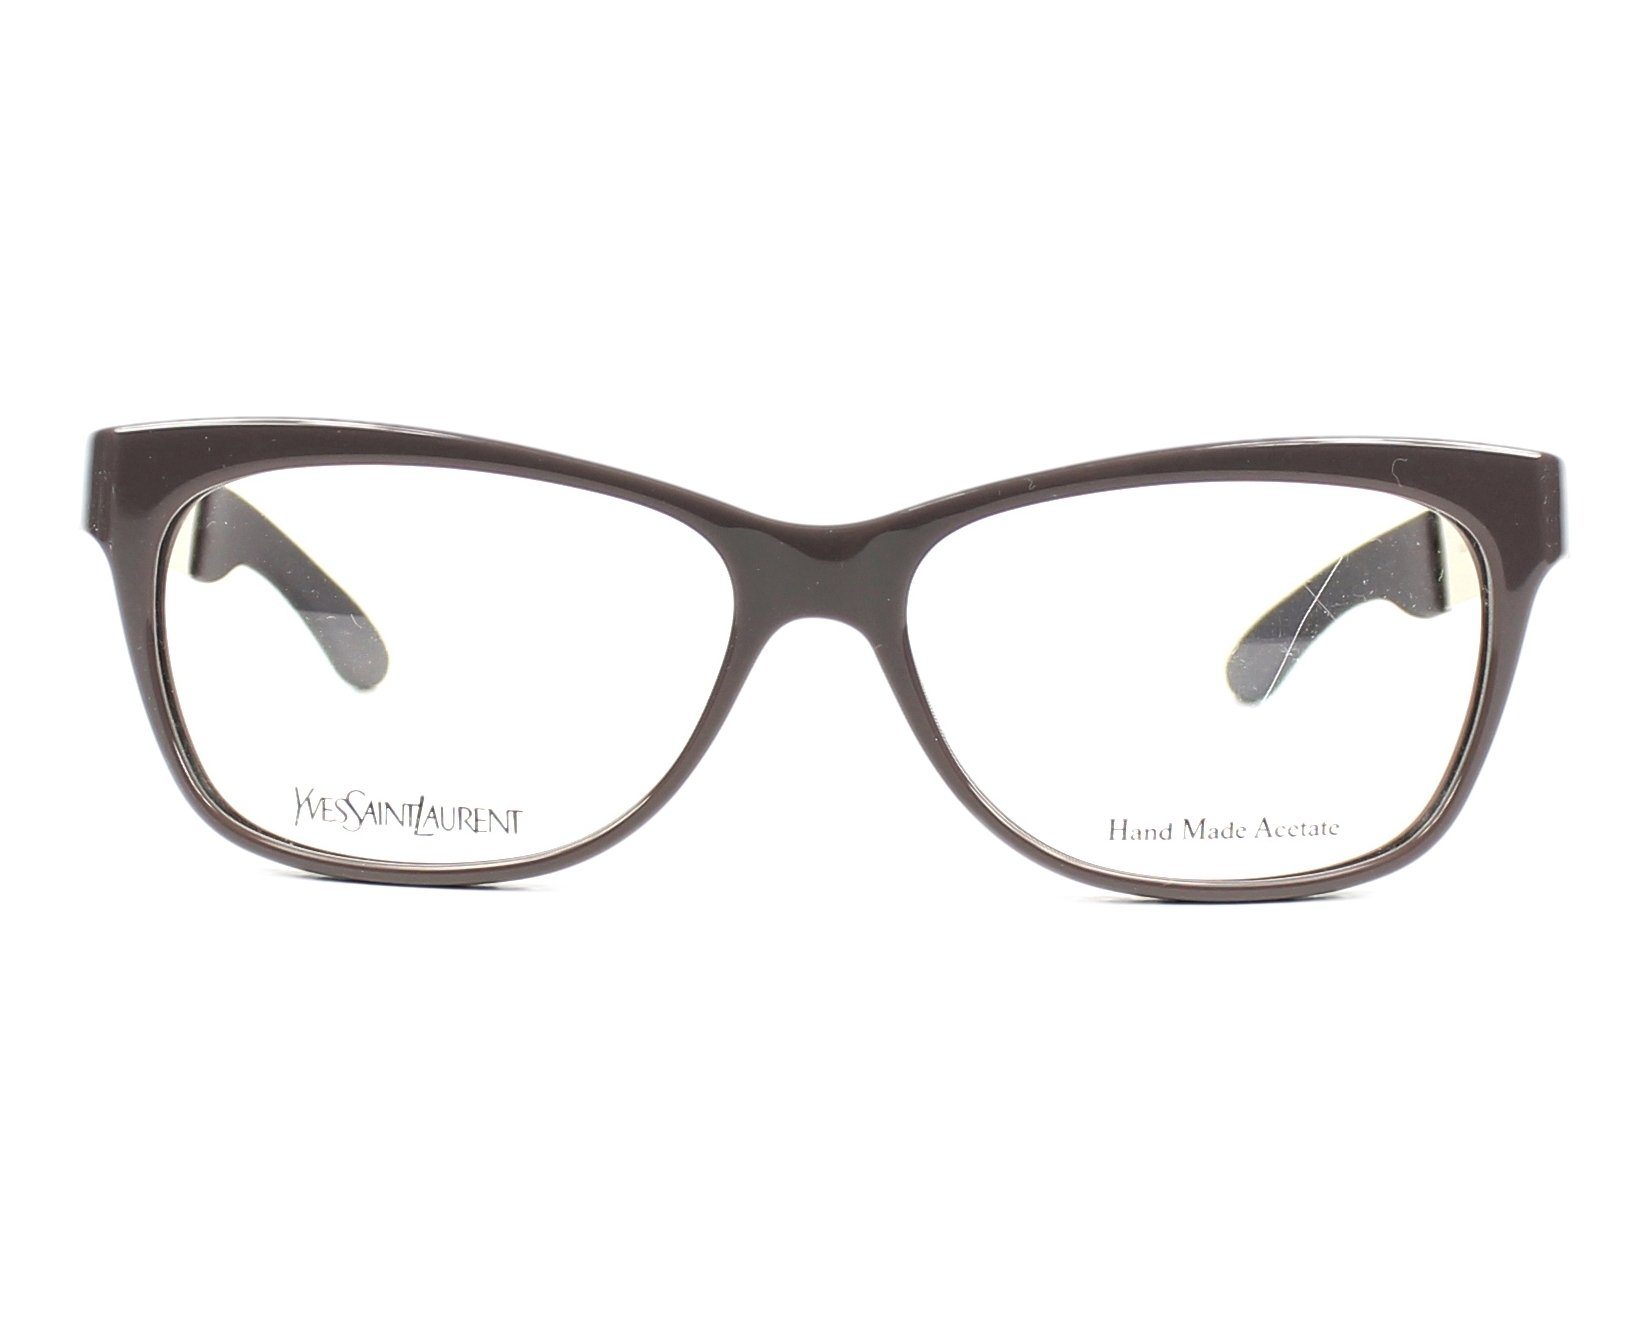 Yves saint laurent eyeglasses ysl 6367 pkz grey visionet for Miroir yves saint laurent